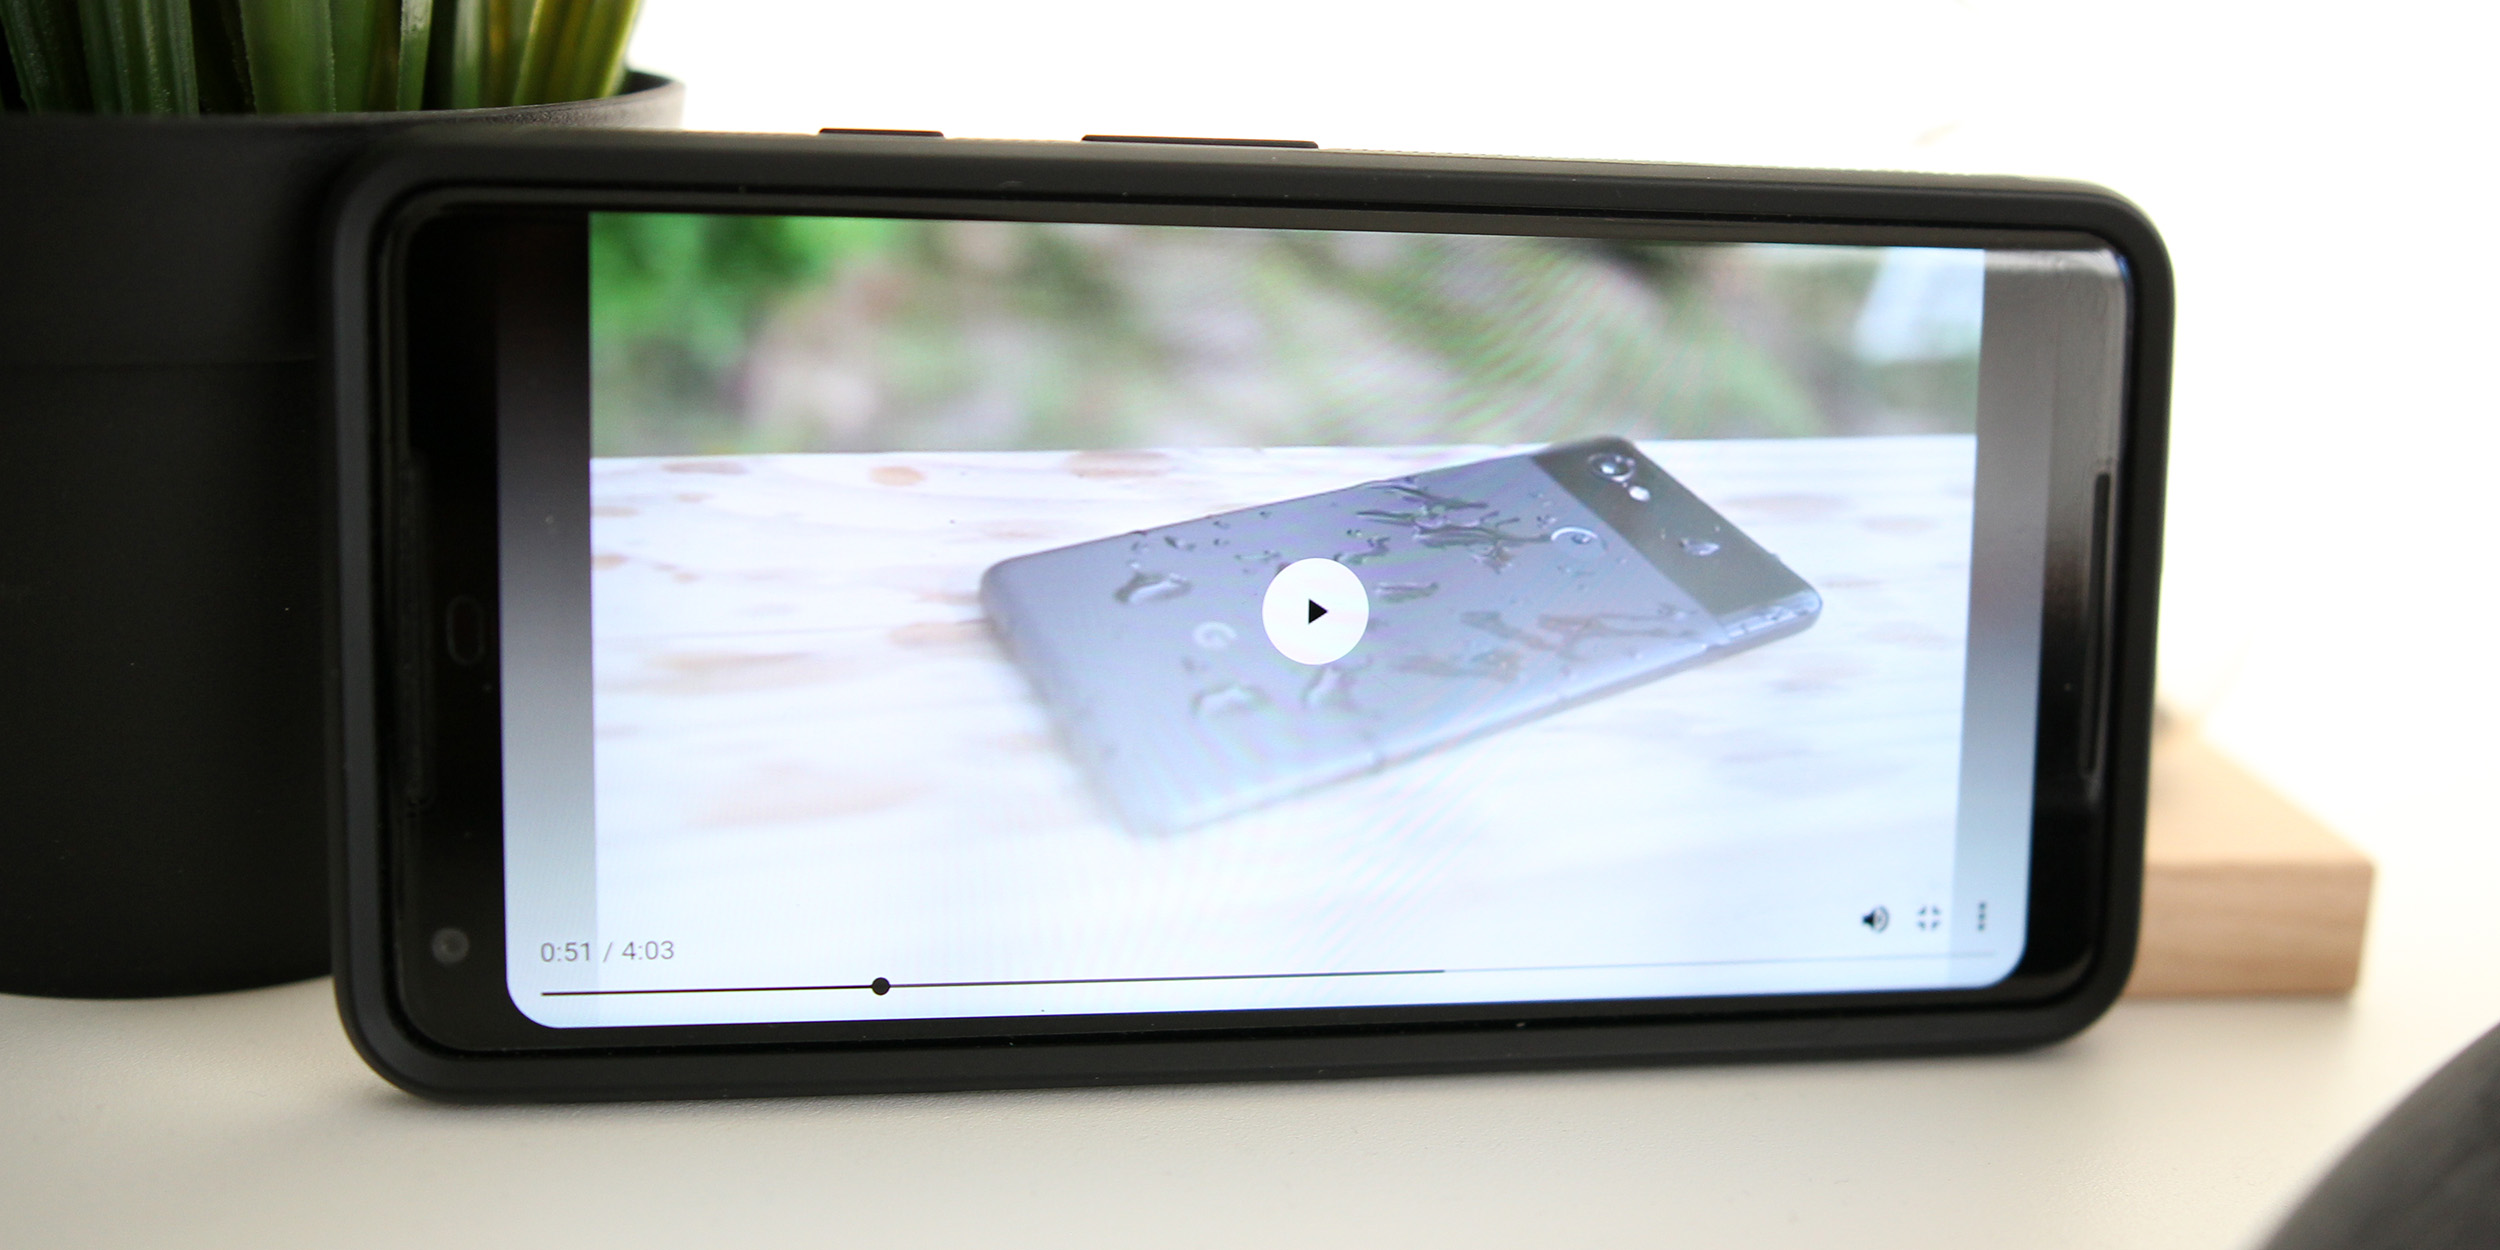 Chrome for Android gets a redesigned video player, tap to rewind